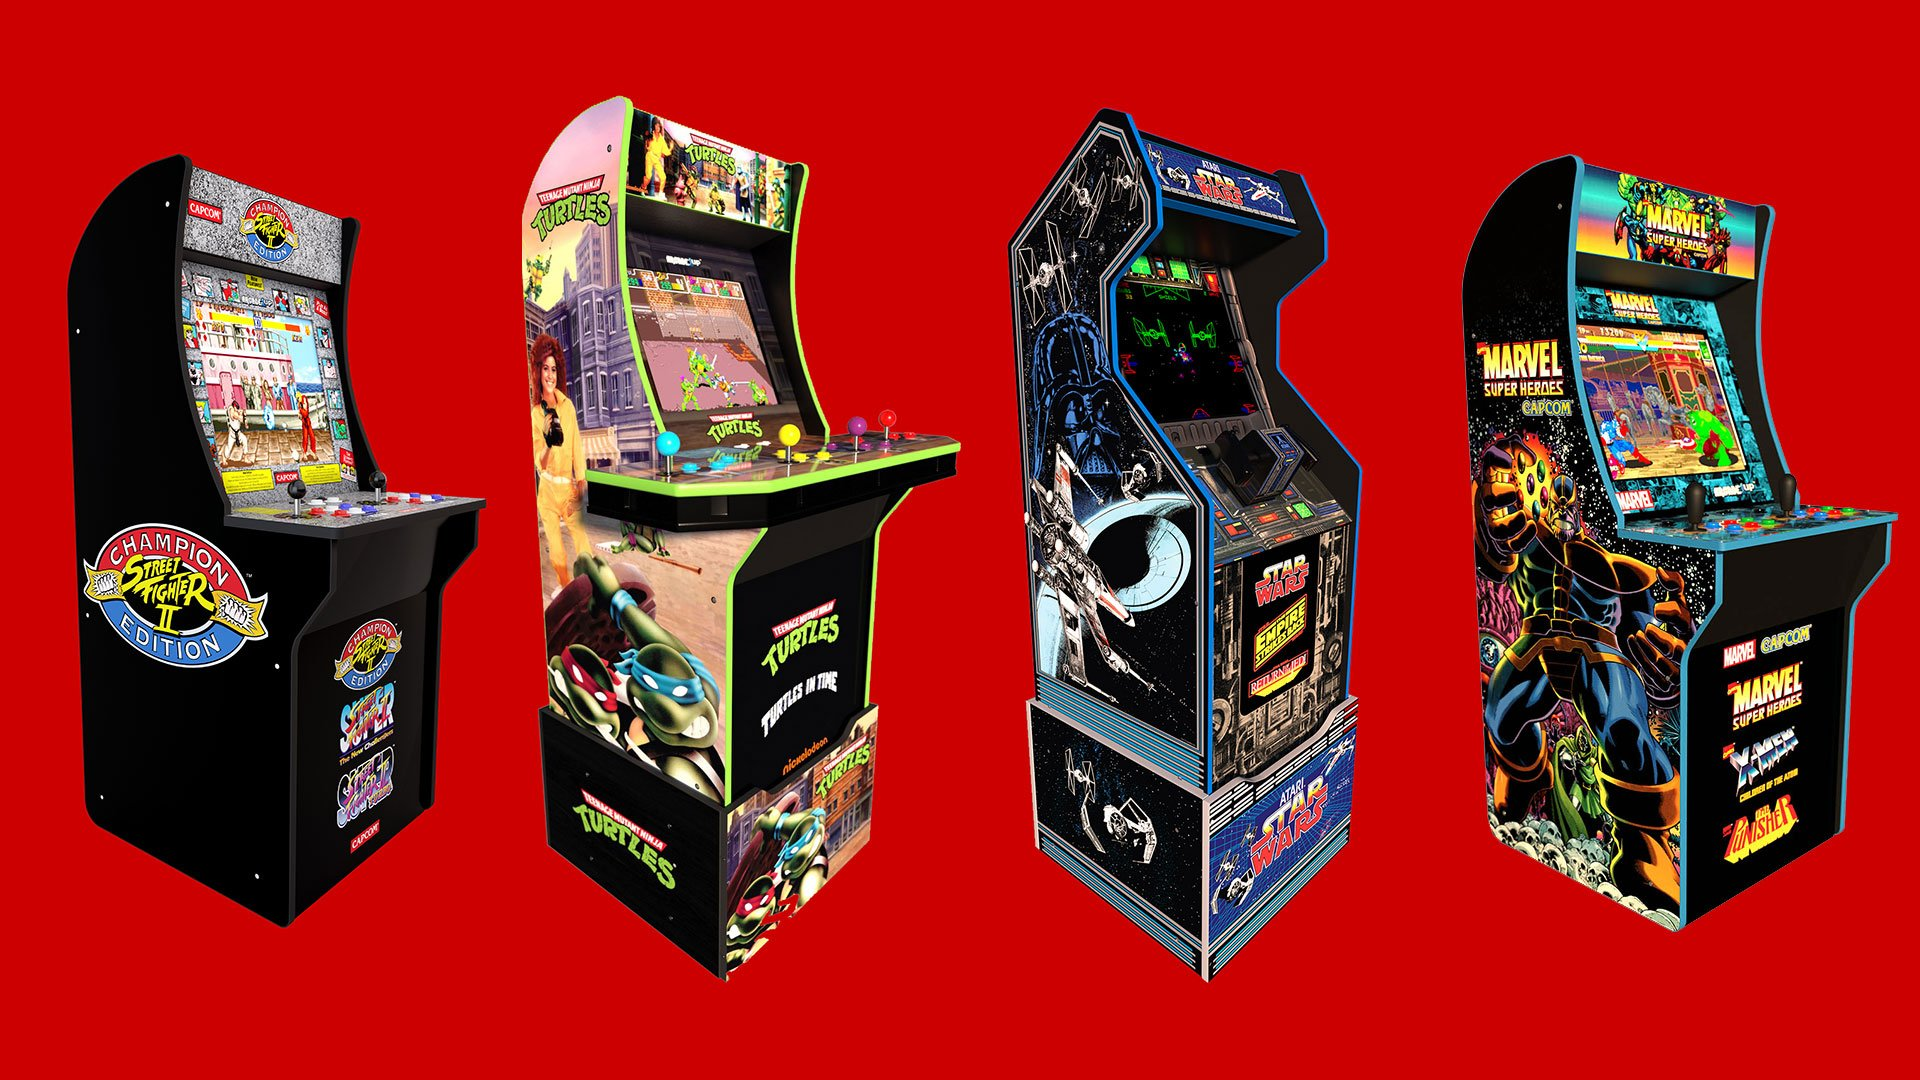 Arcade1Up arcade cabinet Cyber Monday deals up to $150 off (updated) screenshot